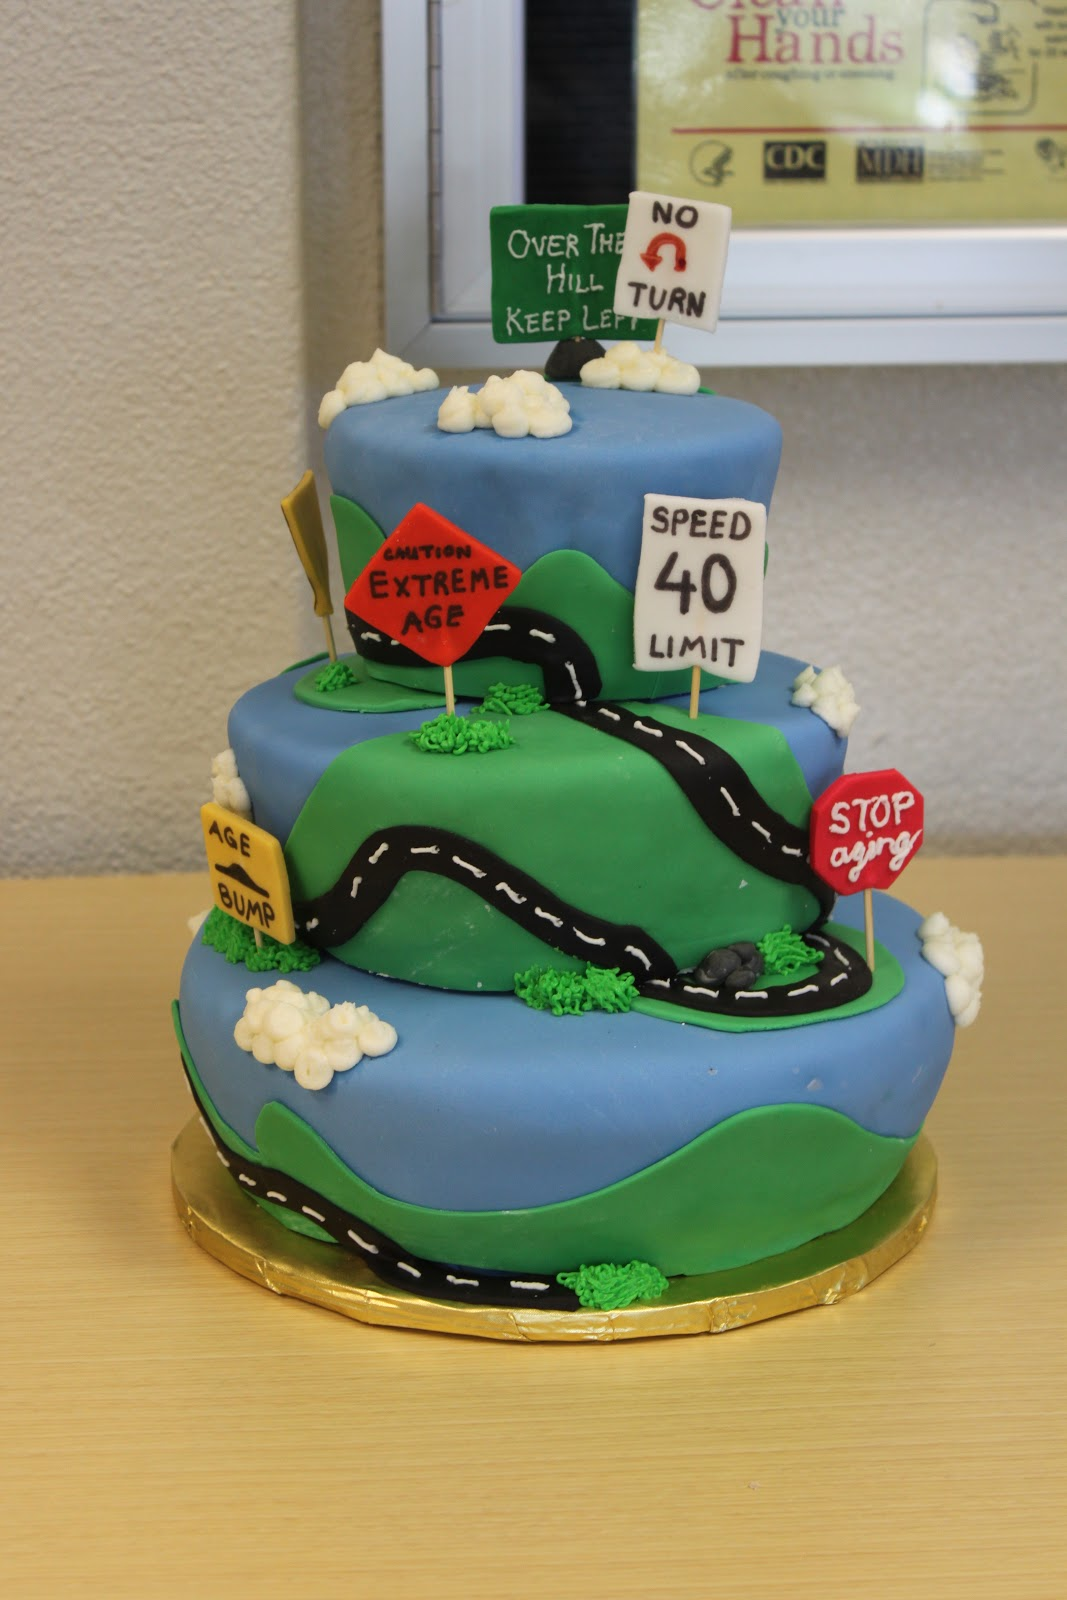 Cakes By Lee: Road of Life- over the hill